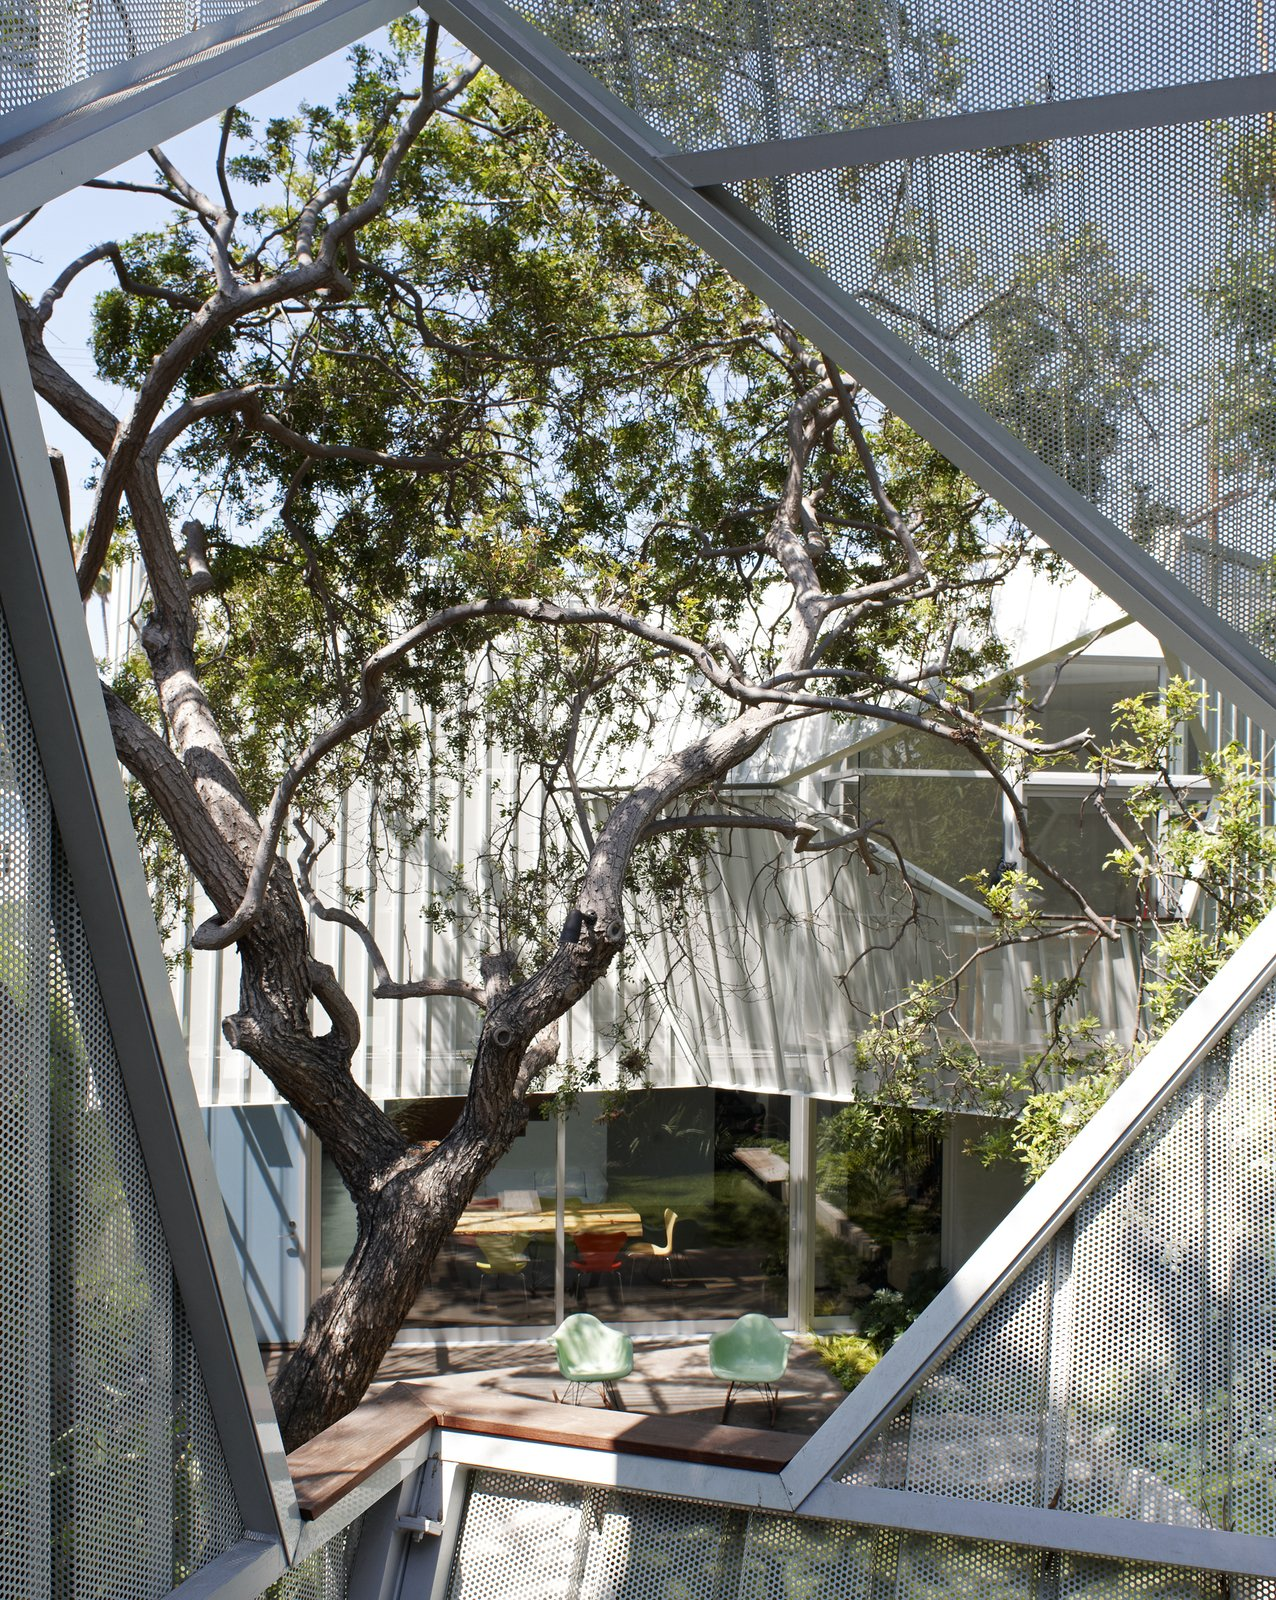 Outdoor  Photo 6 of 10 in A Perforated Screen Brings Privacy and Natural Light to This Bold Venice Home